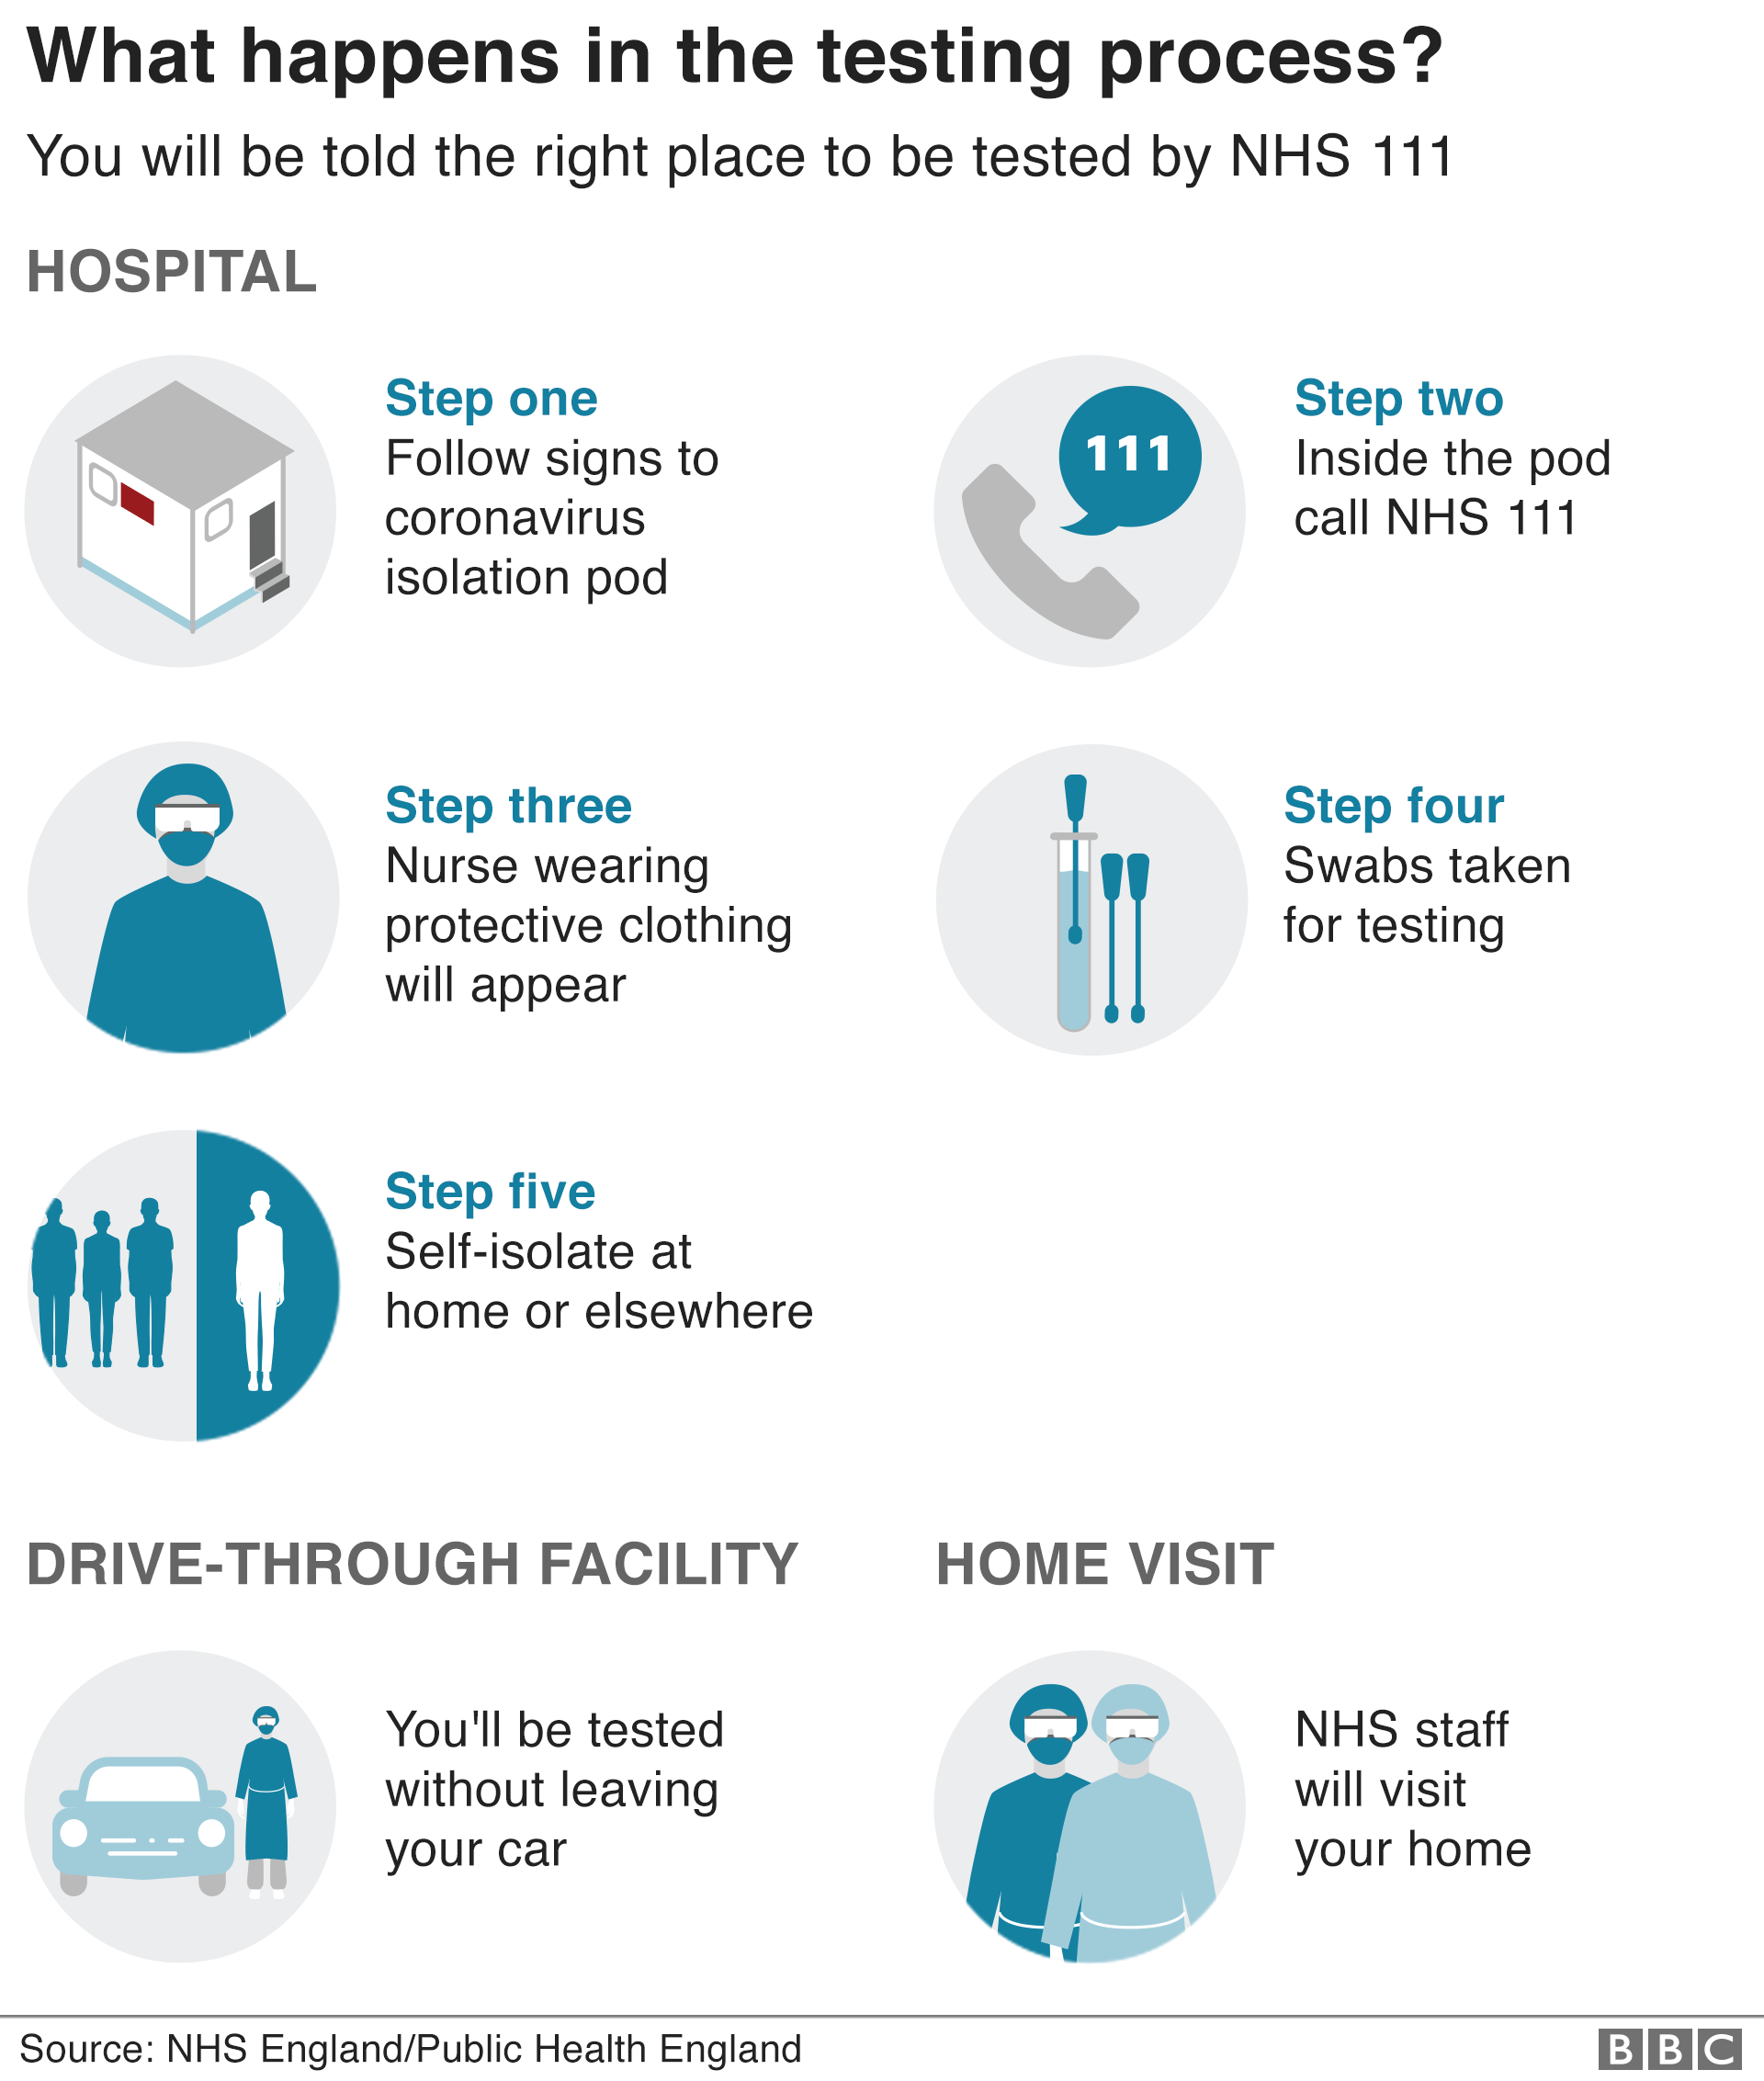 Graphic showing what happens if you have to be tested. You will be told the right place to be tested by NHS 111. If you are told to go to a hospital you must follow signs to coronavirus isolation pod. Inside the pod call NHS 111. A nurse wearing protective clothing will appear. Swabs taken for testing. Self-isolate at home or elsewhere. If you have to go to a drive-through facility, you'll be tested without leaving your car. Or NHS staff may visit your home